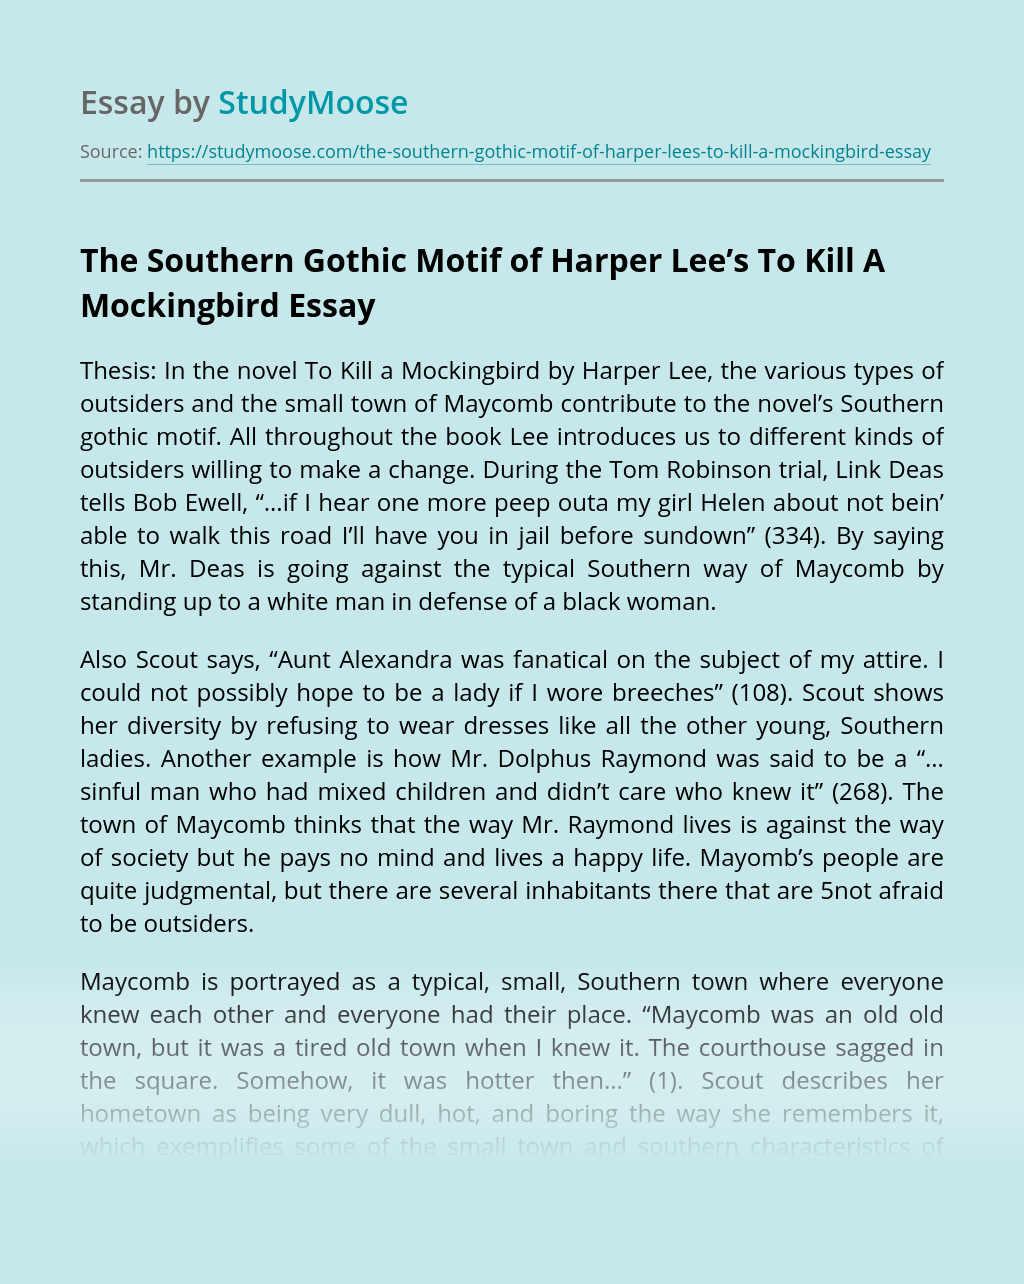 ?The Southern Gothic Motif of Harper Lee's To Kill A Mockingbird